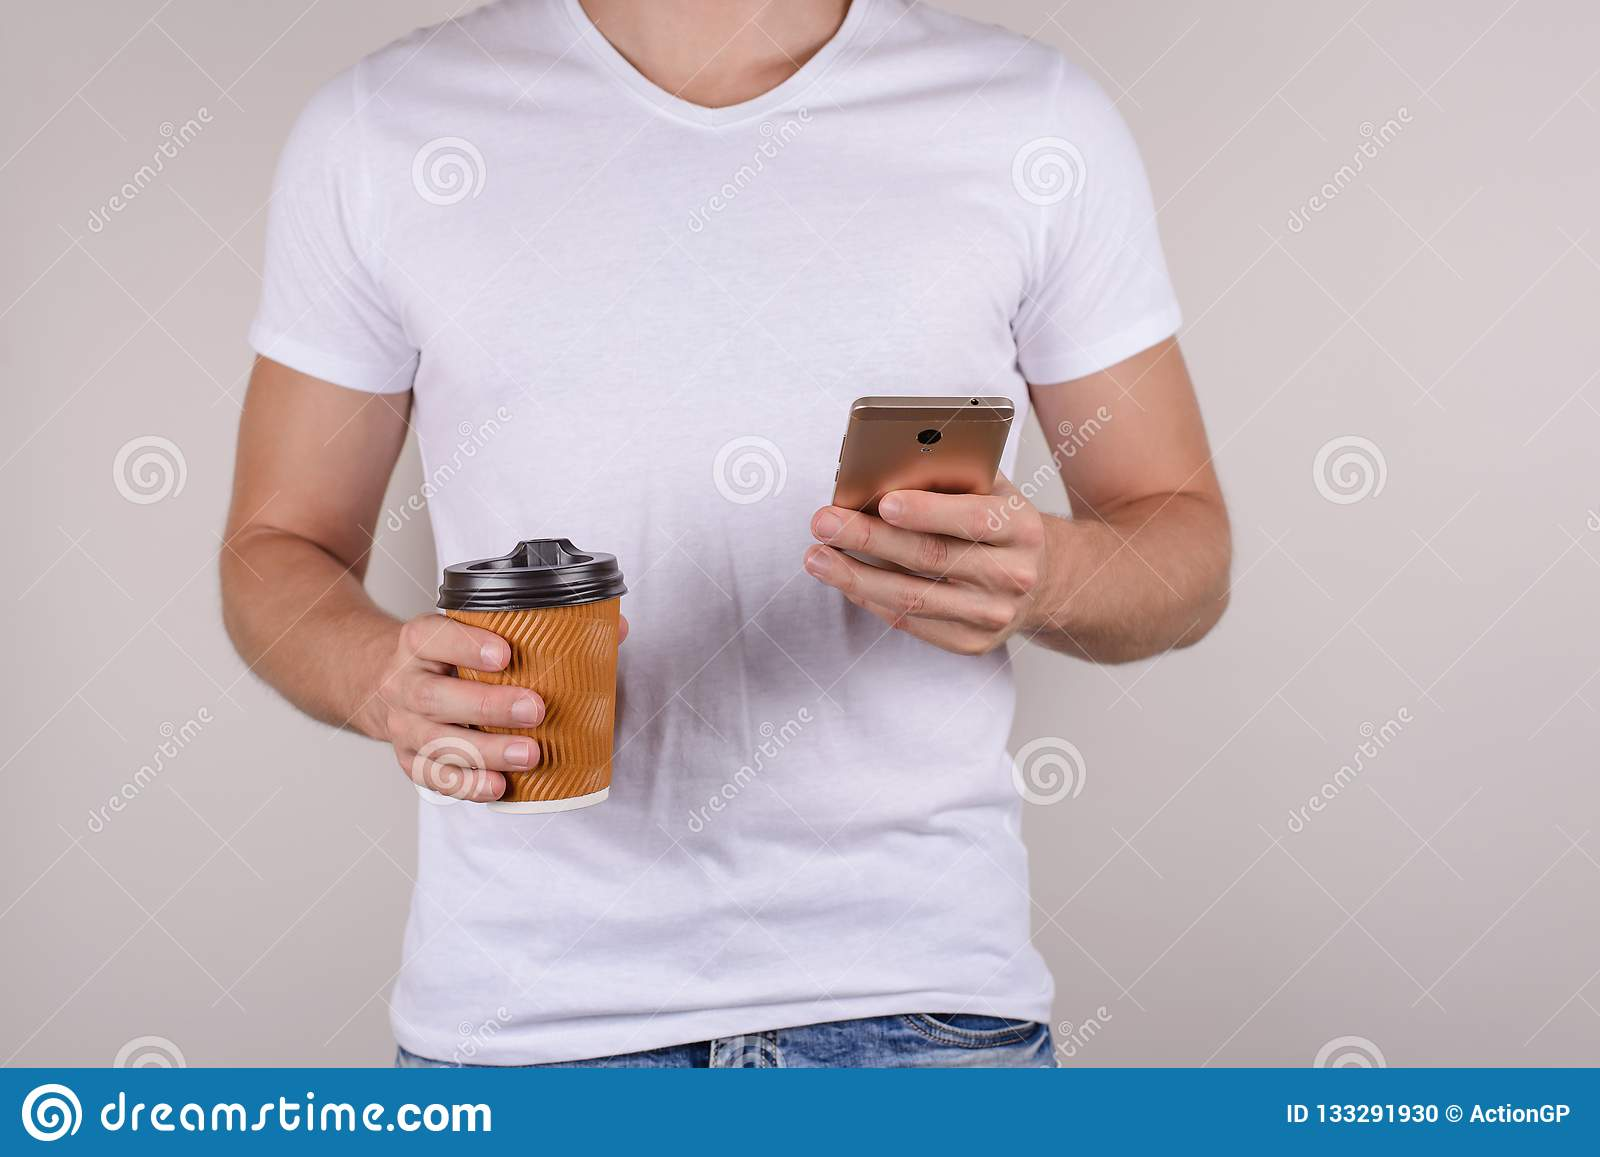 Cropped close up photo of handsome virile masculine tanned skinned attractive people person student drinking hot beverage using c